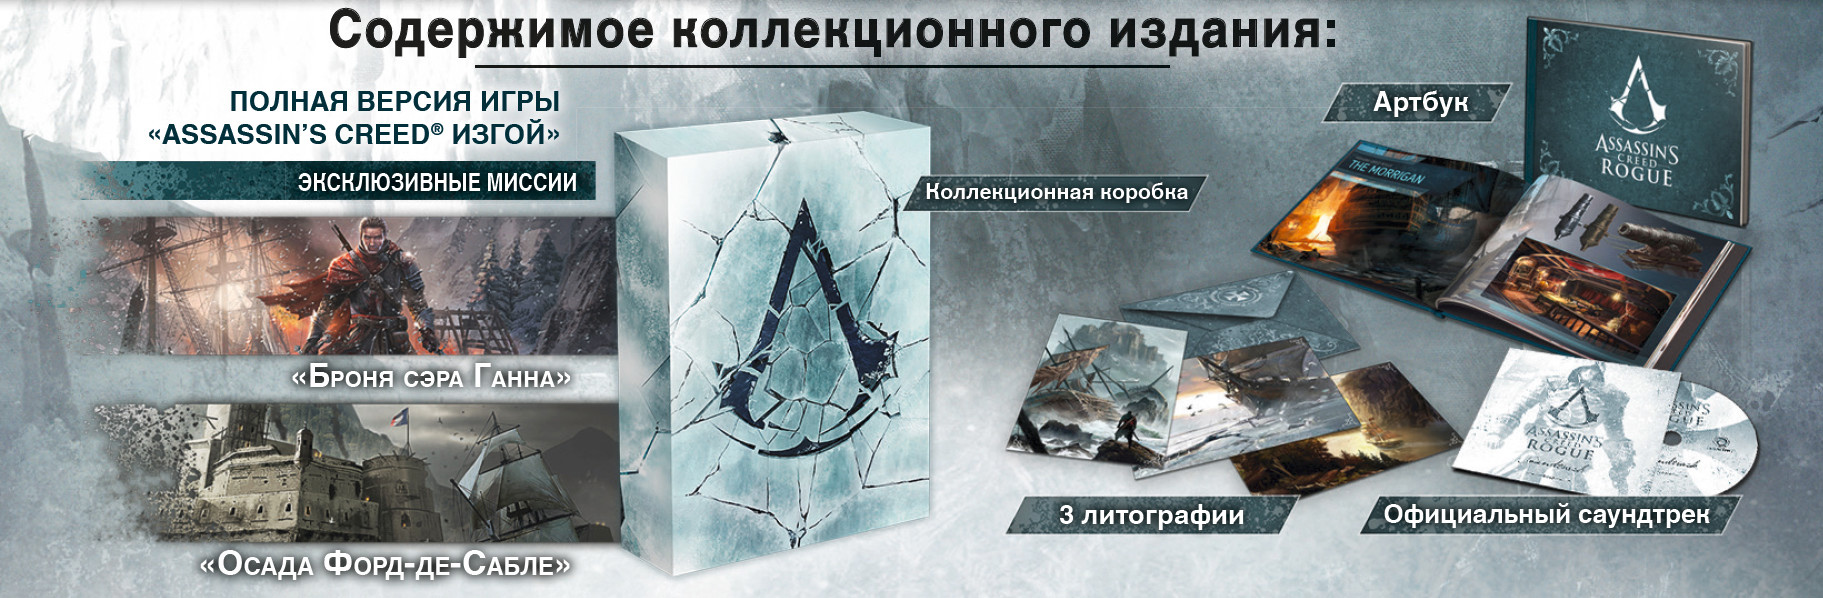 ACRogue_Collectorring_header